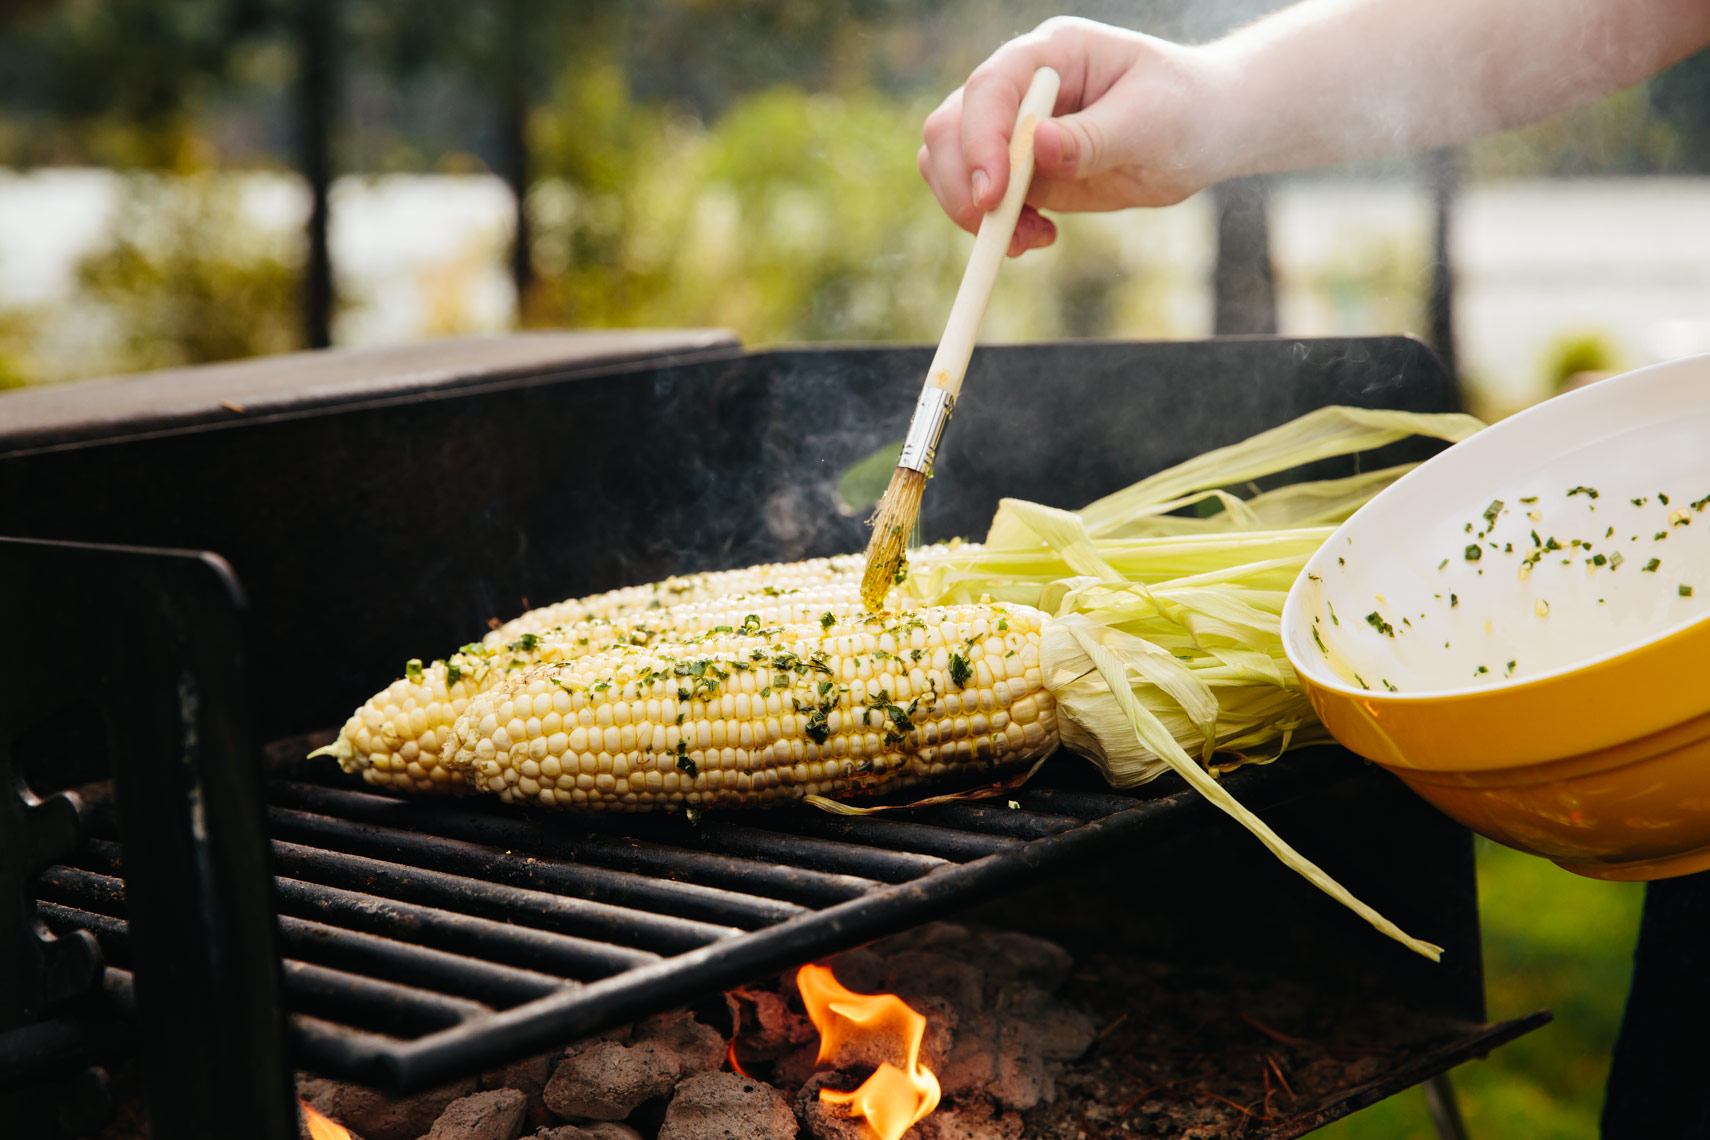 Grilled corn on the cob - Kristin Teig